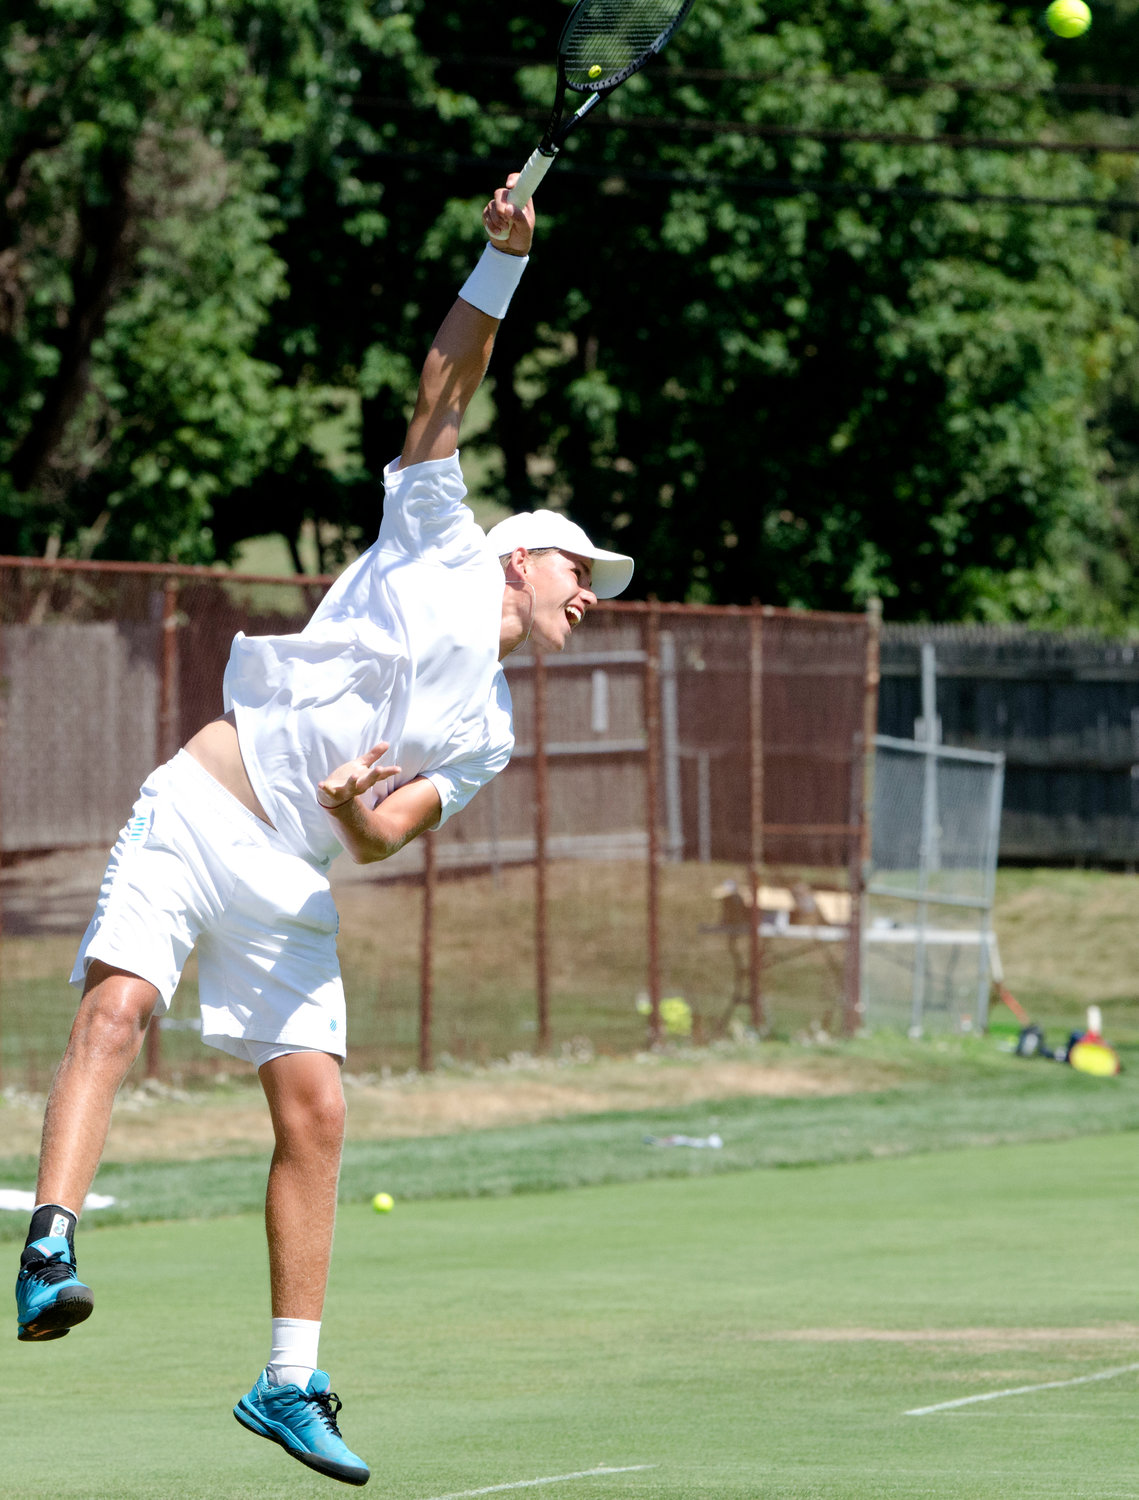 Danny Milvasky serves during singles play in the Second Annual New England Grass Court Open Tourney at the Agawam Hunt Club. Milvasky would later suffer a broken ankle in his semifinal match against eventual champion Matt Kuhar.